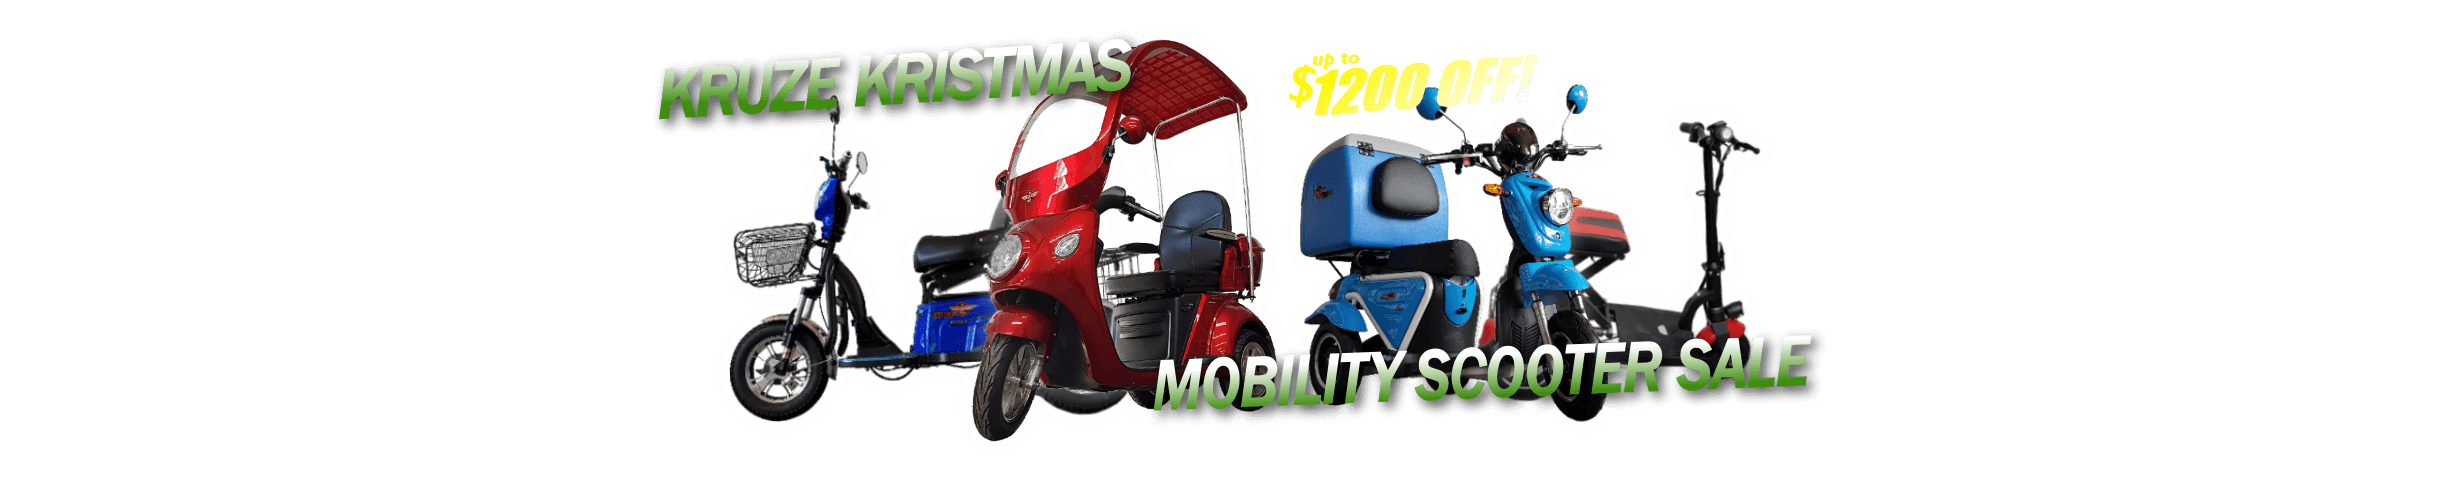 mobility scooters sale